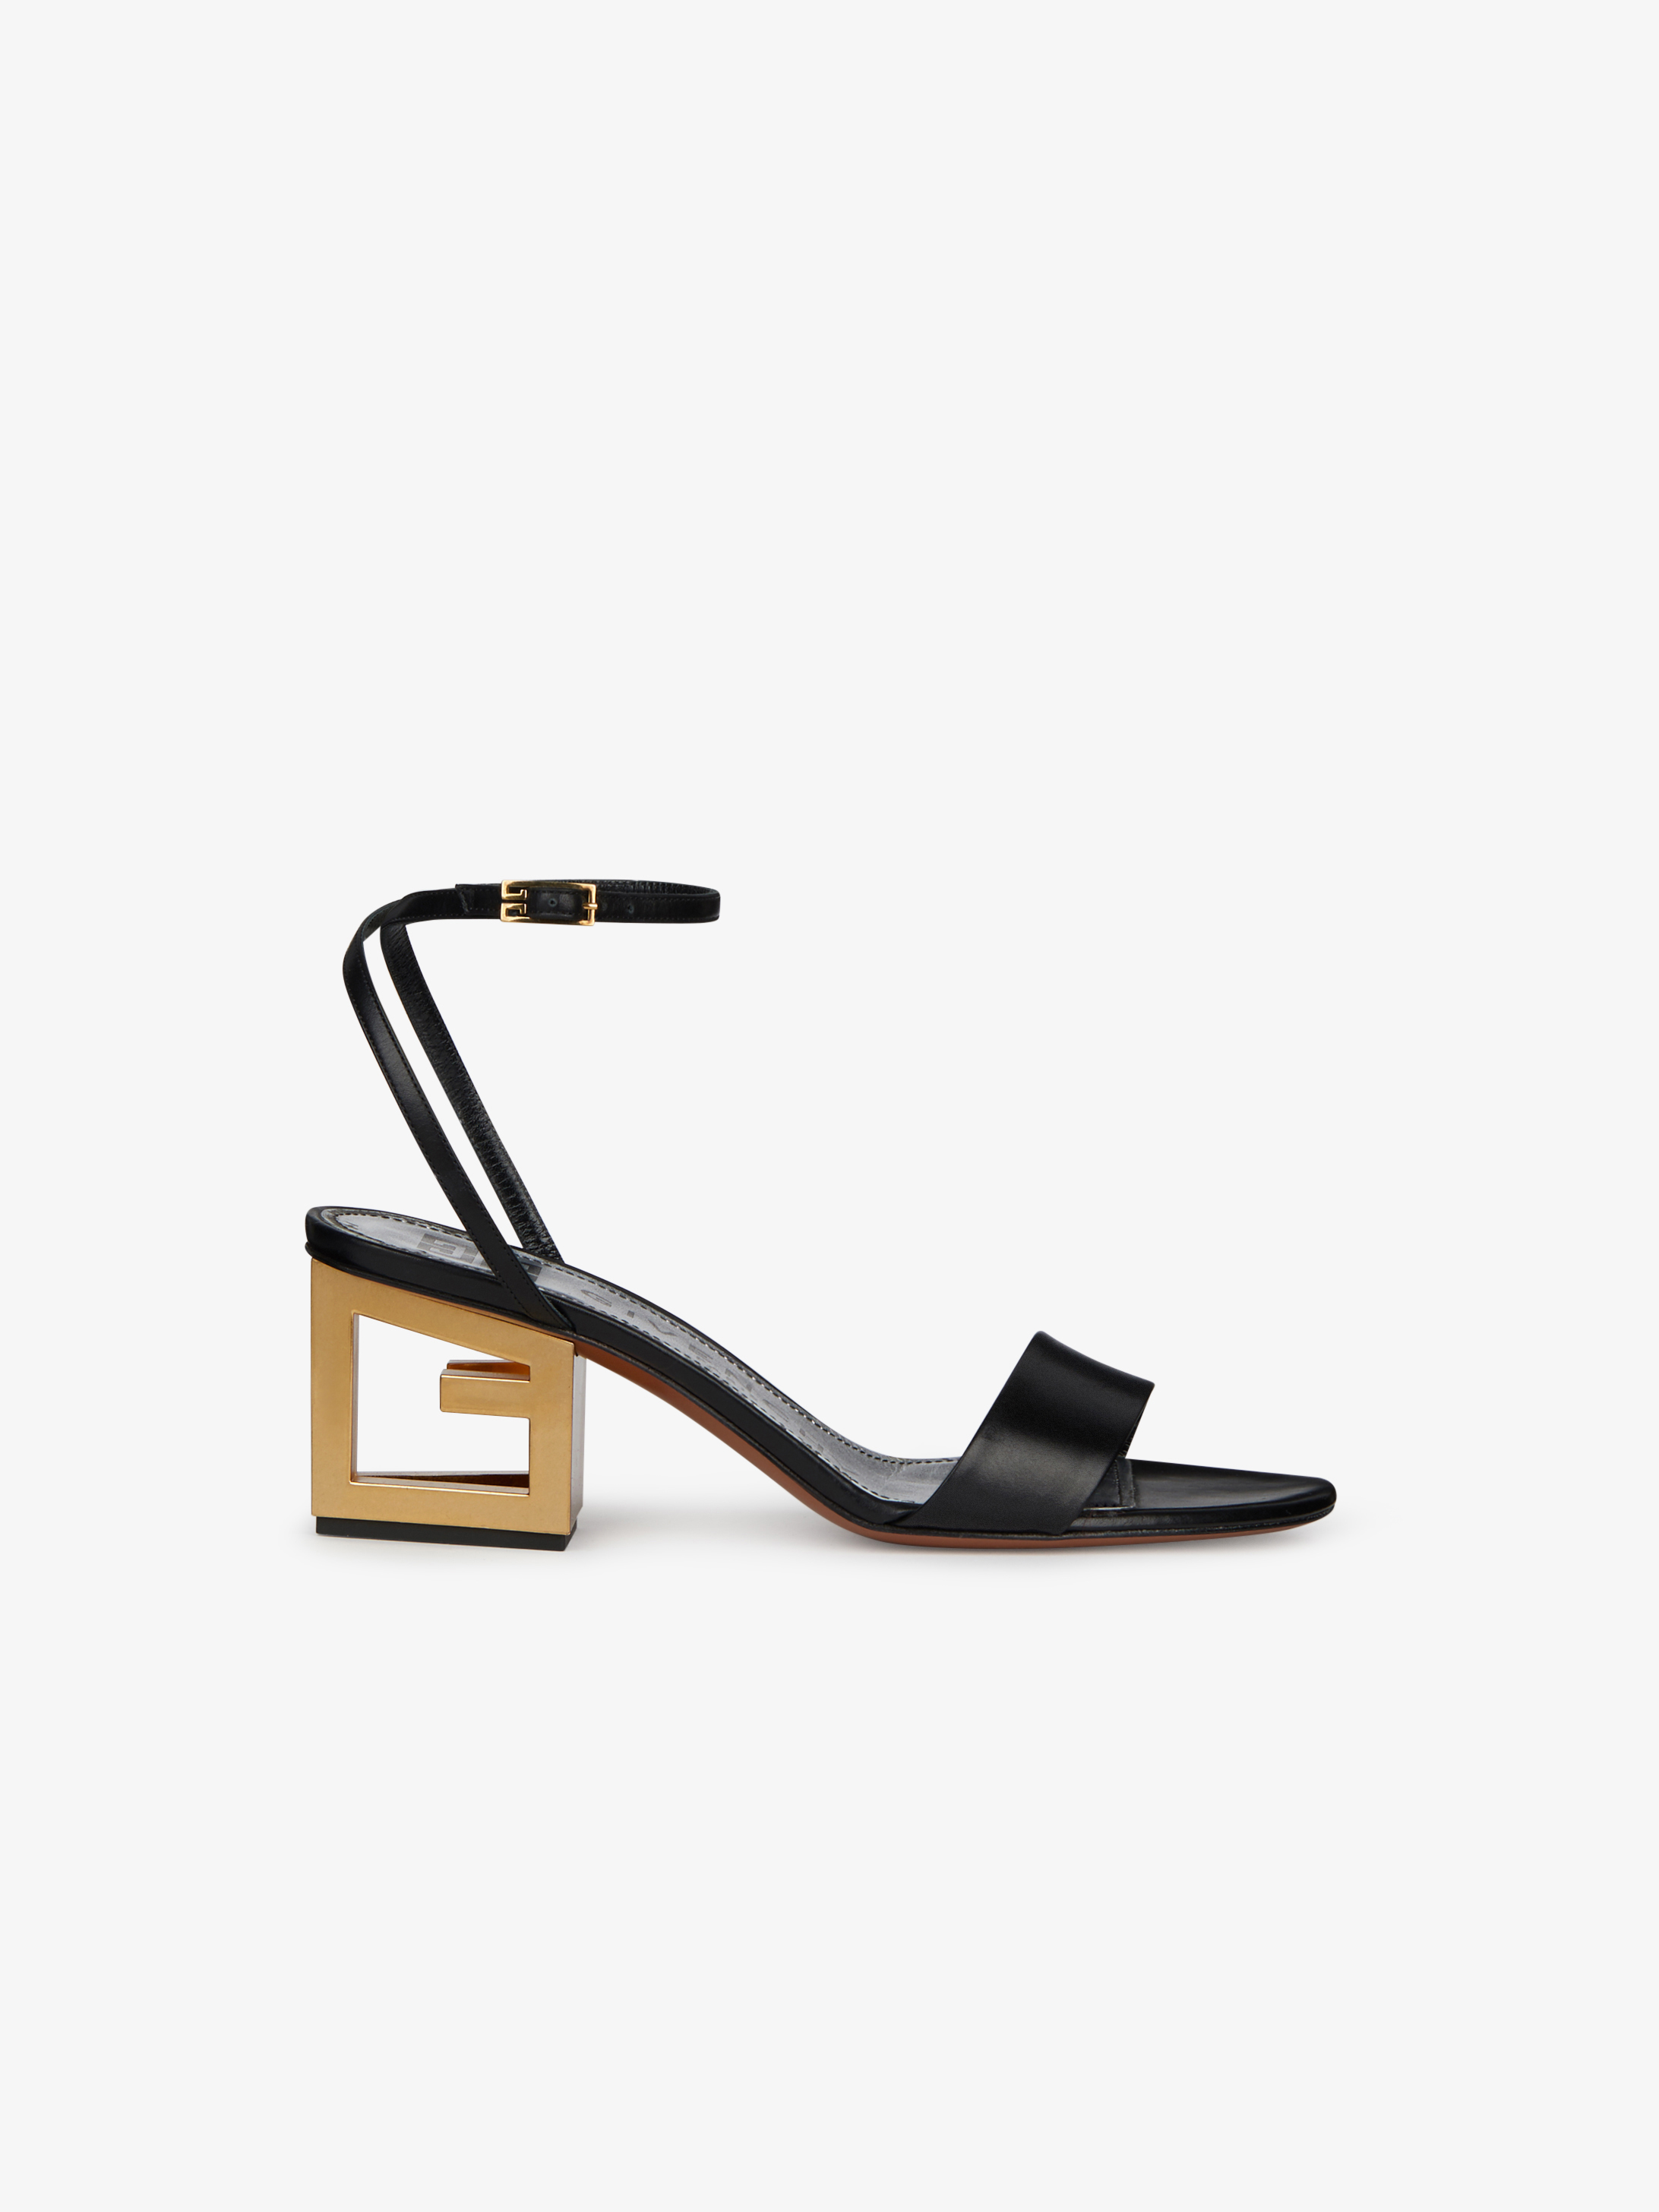 Gold G heel sandals in leather